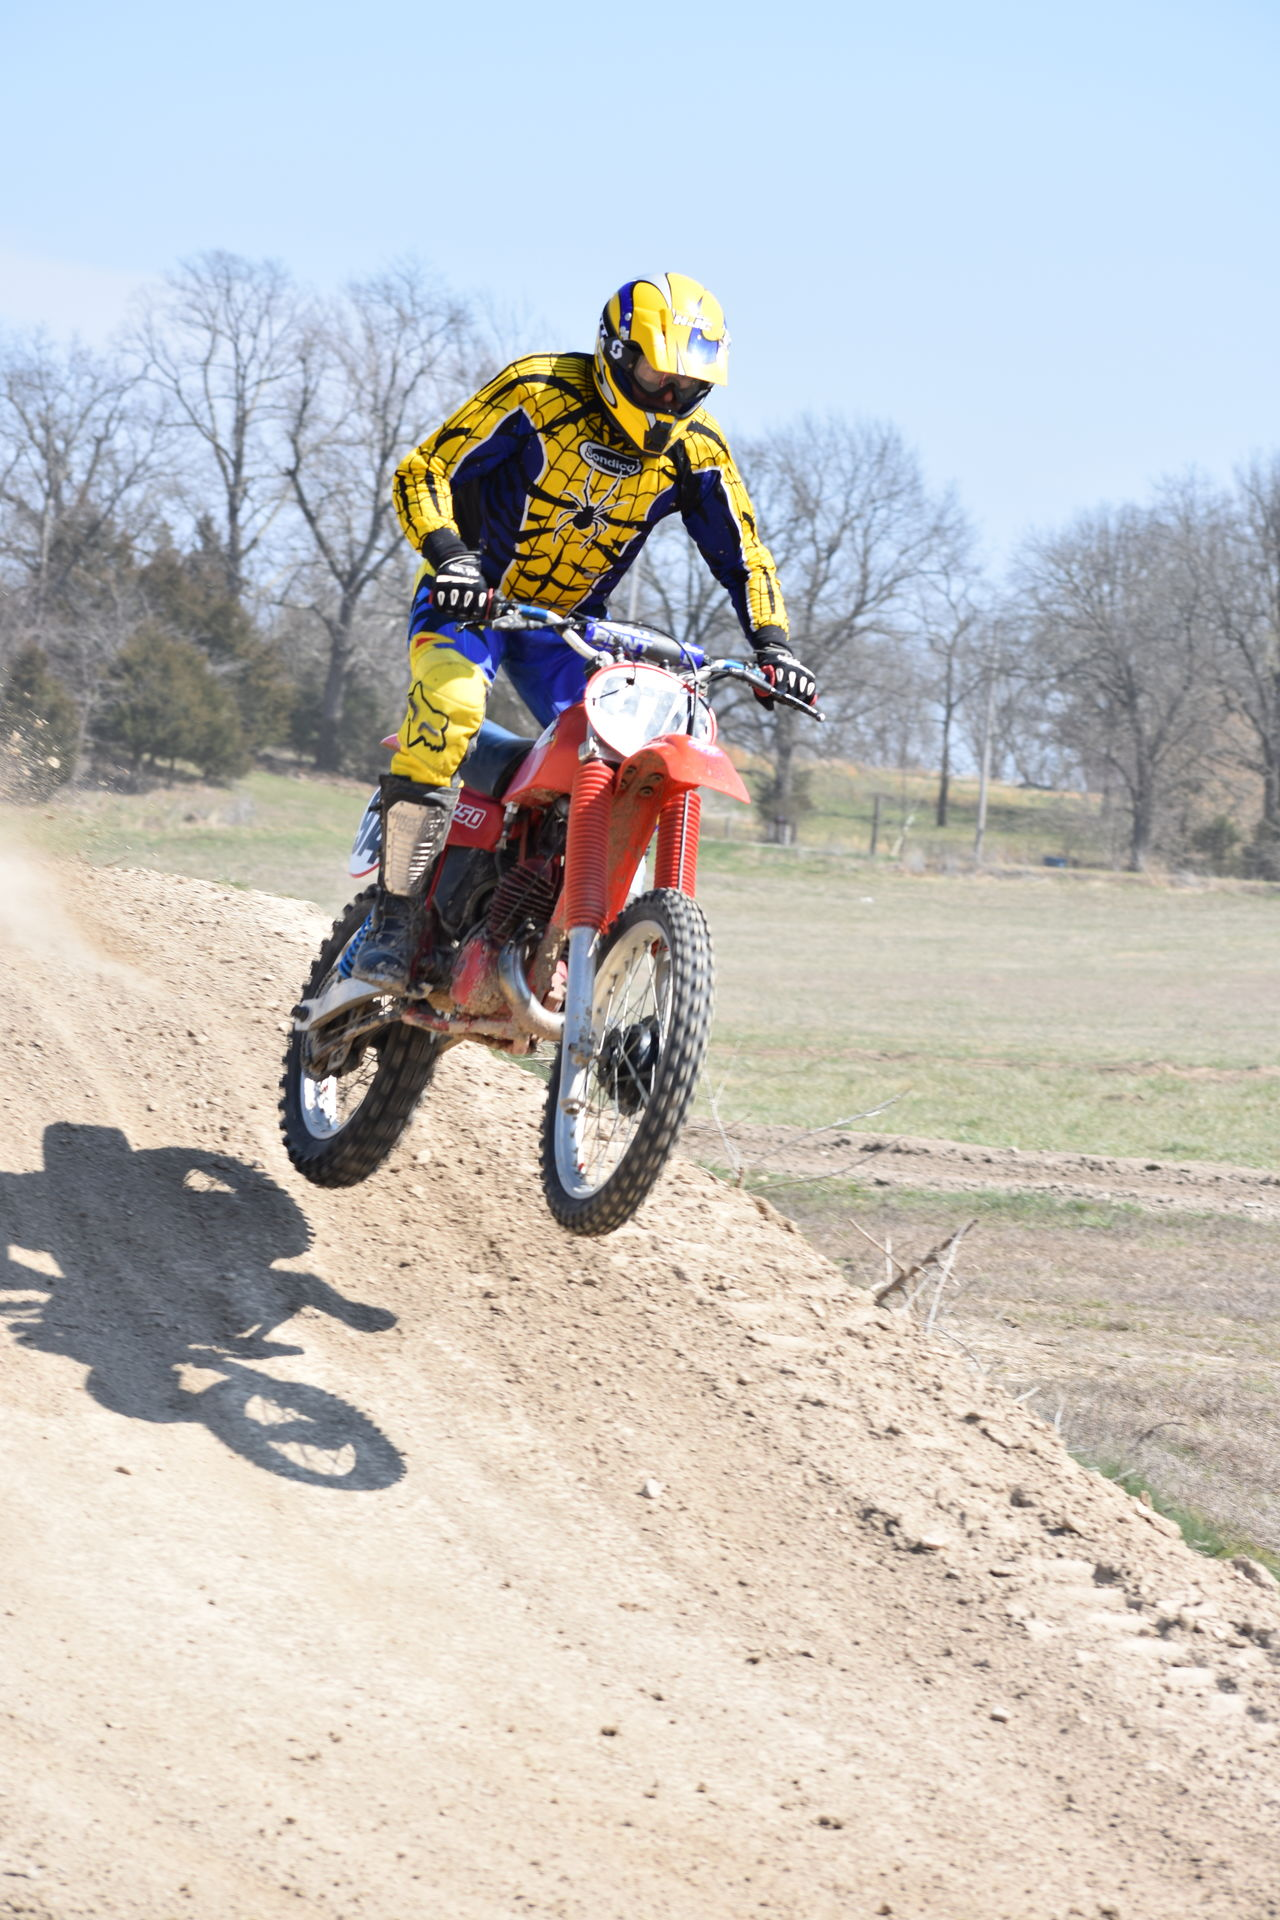 Adventure Extreme Sports Motocross Motorcycle Racing Motorsport Outdoors Real People Skill  Sport Sports Track Transportation